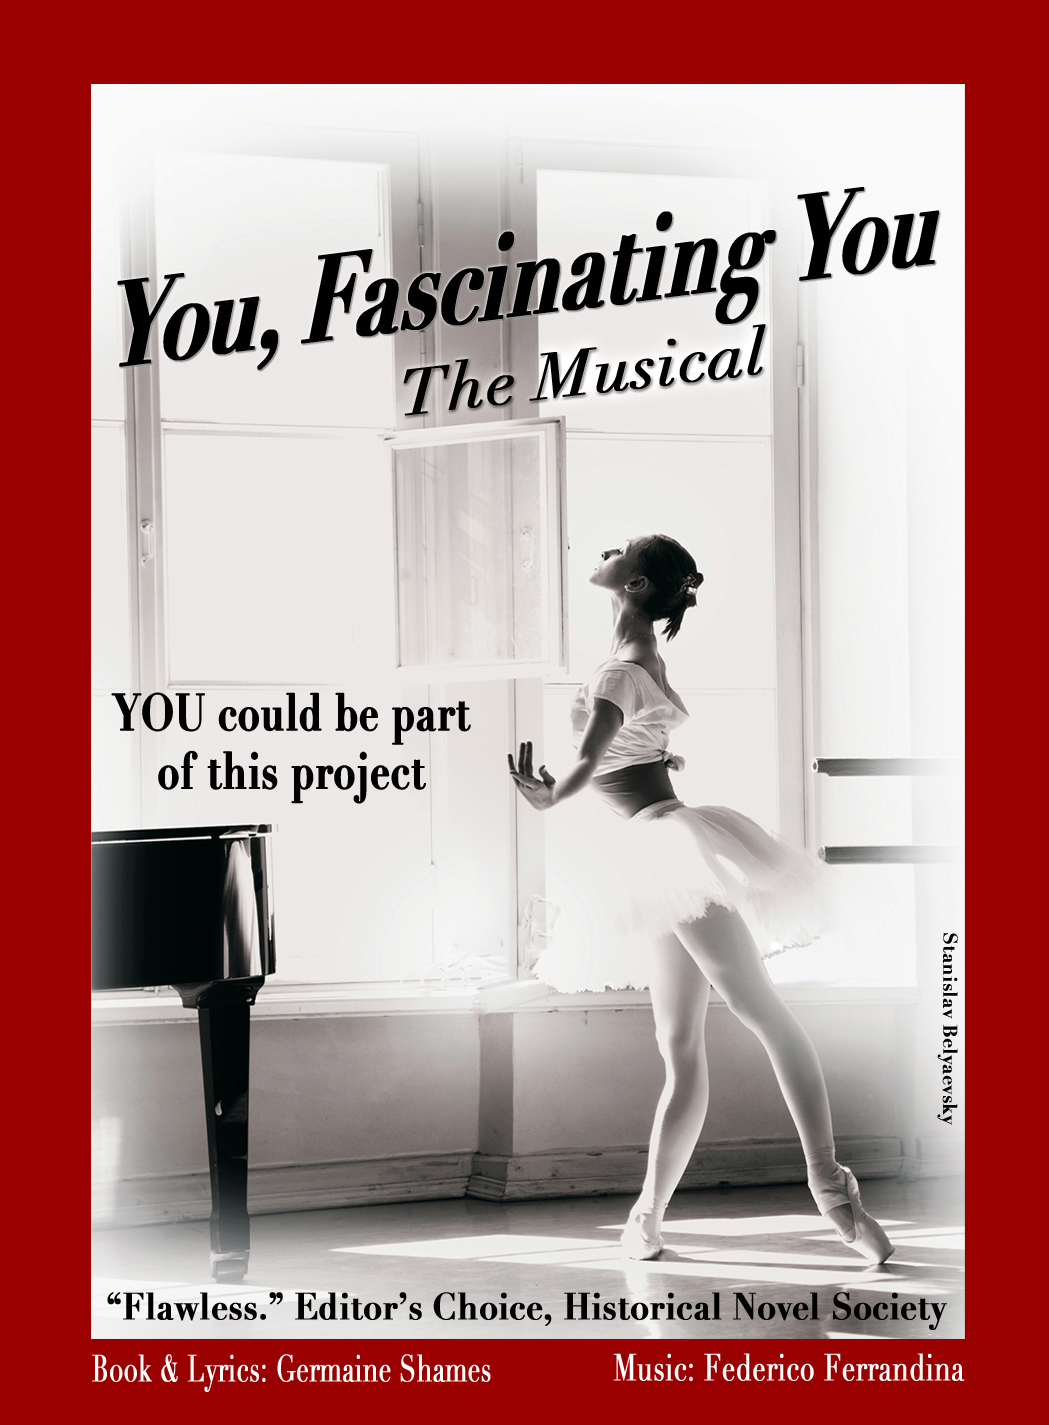 You, Fascinating You the Musical.